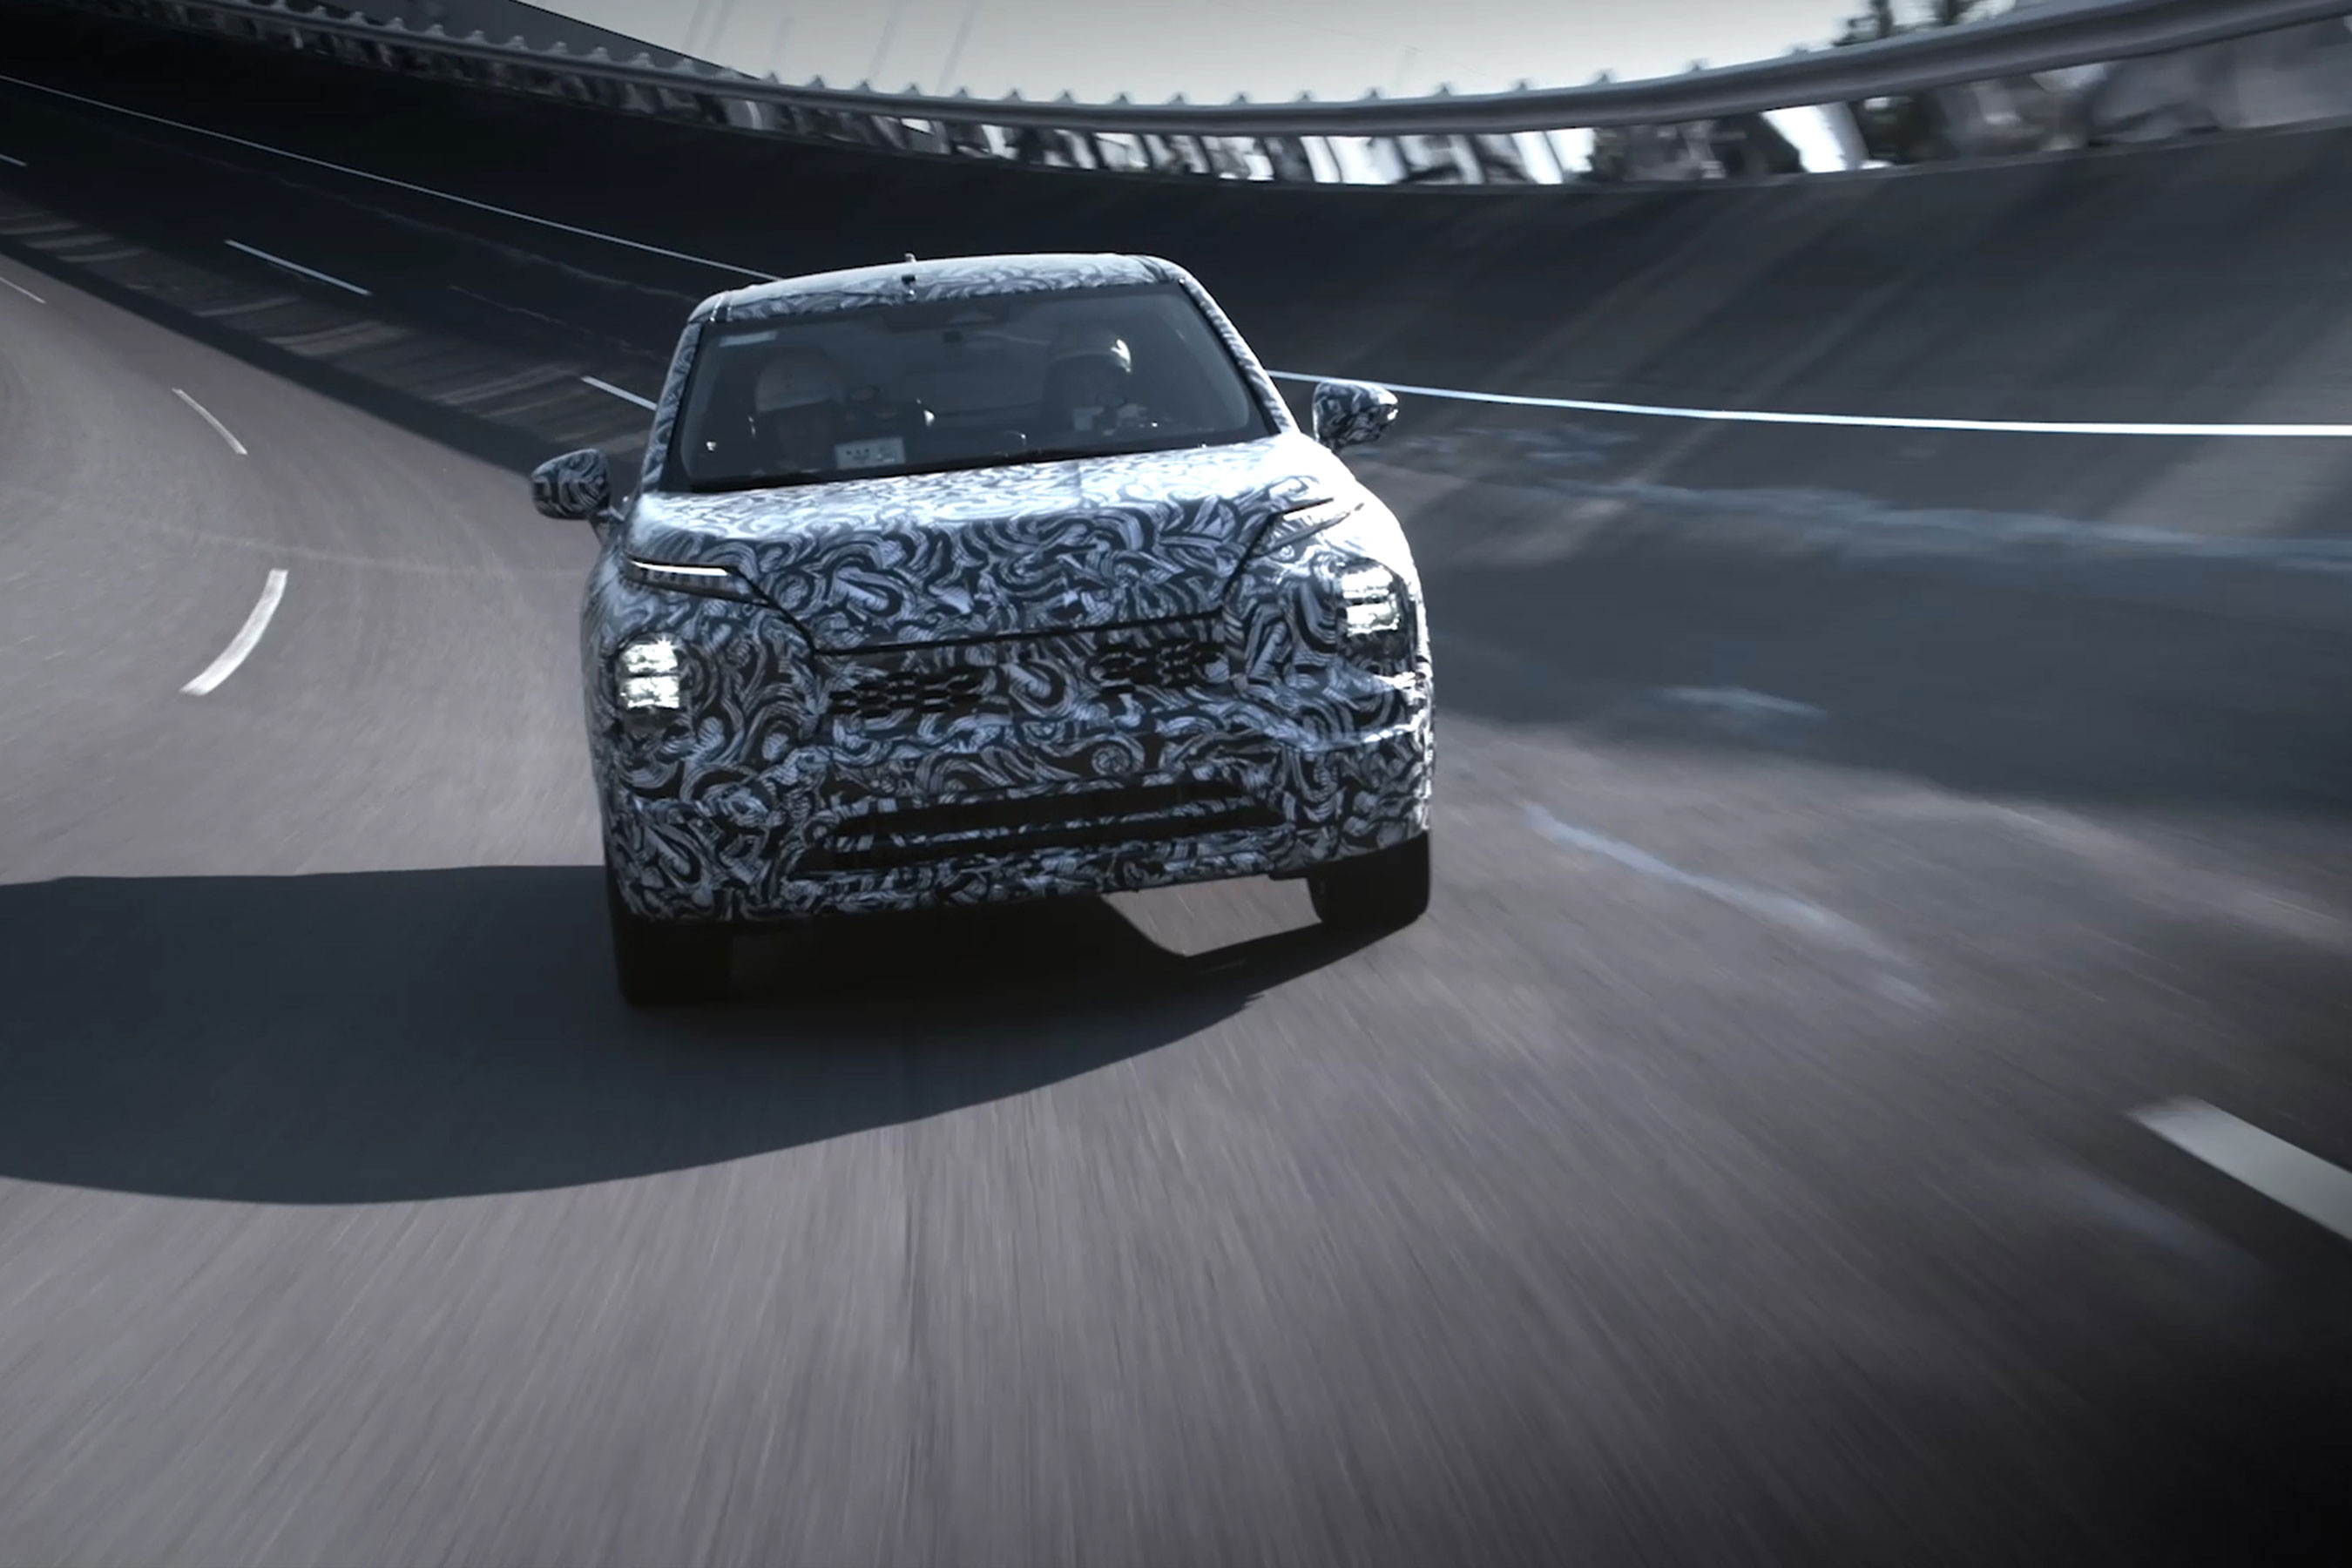 Mitsubishi Motors provides exclusive look at the all-new 2022 Outlander undergoing final testing.